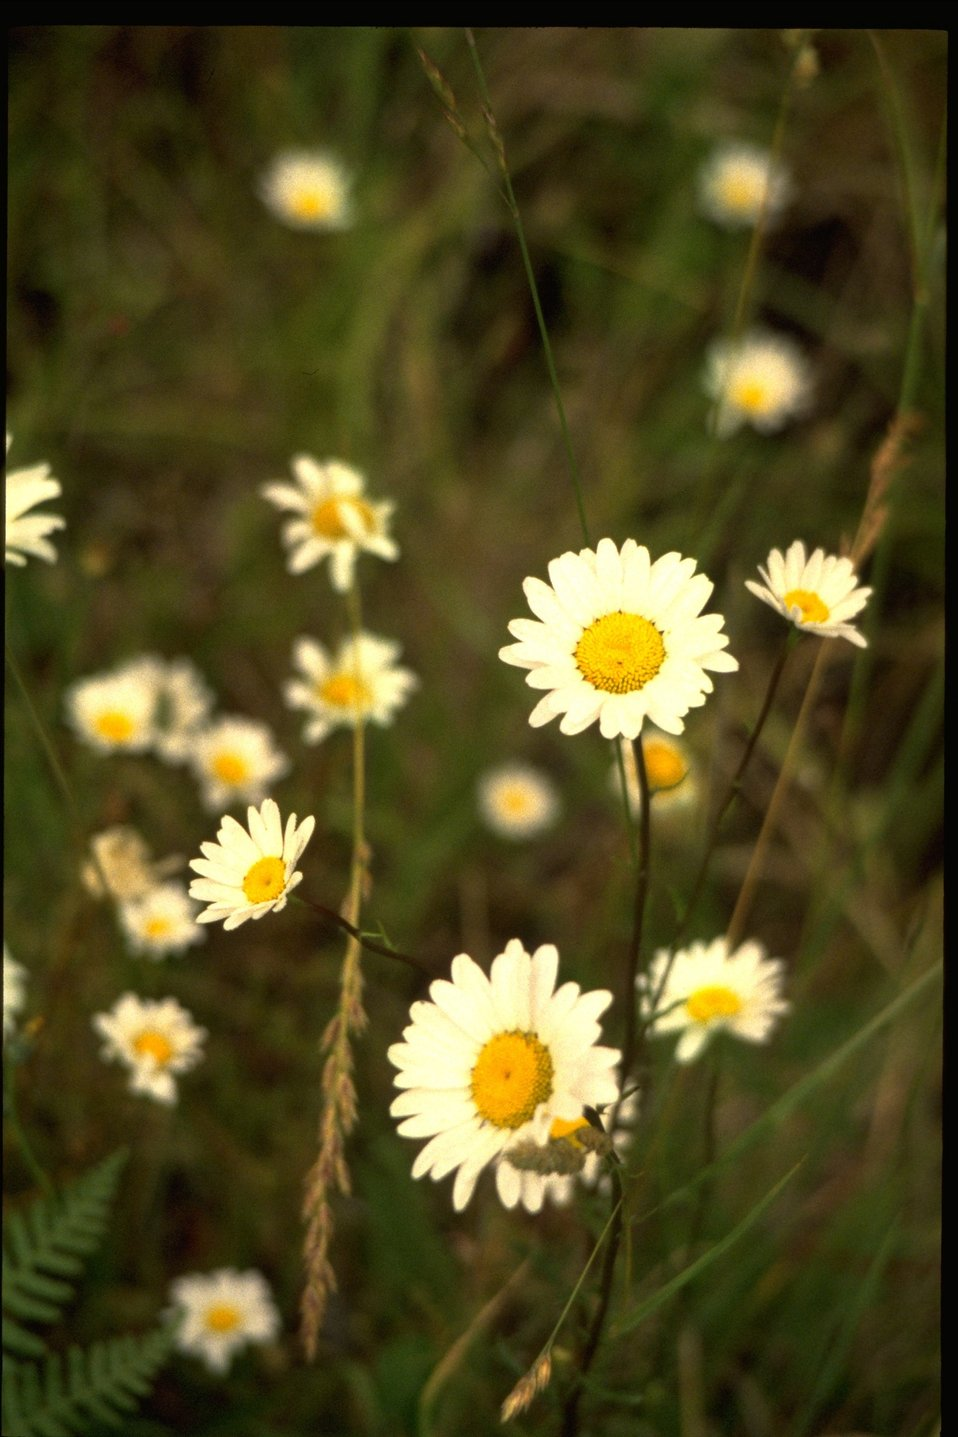 Medium shot of Leucanthemum vulgare.